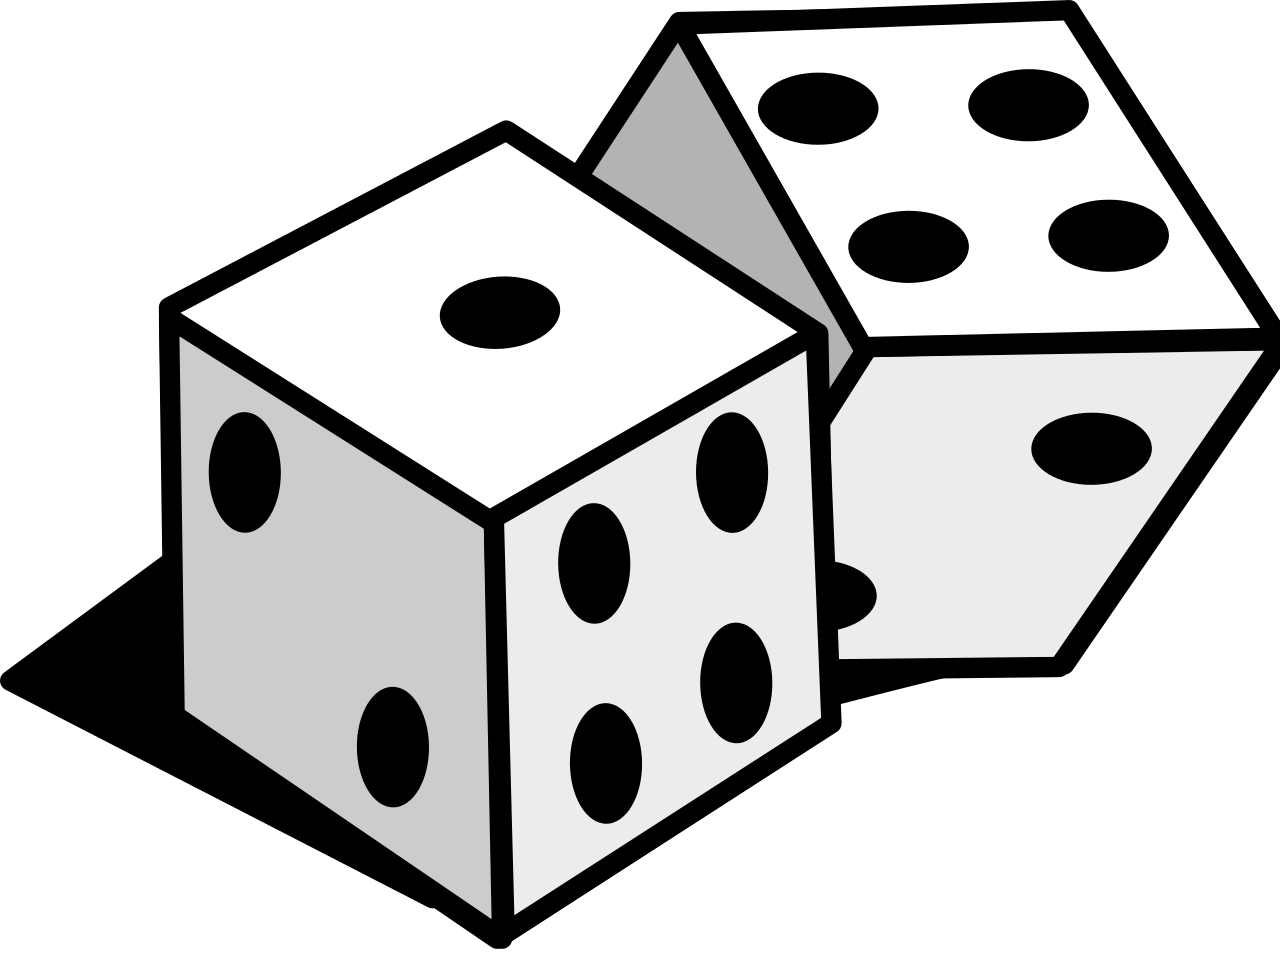 File svg wikimedia commons. Dice clipart line art